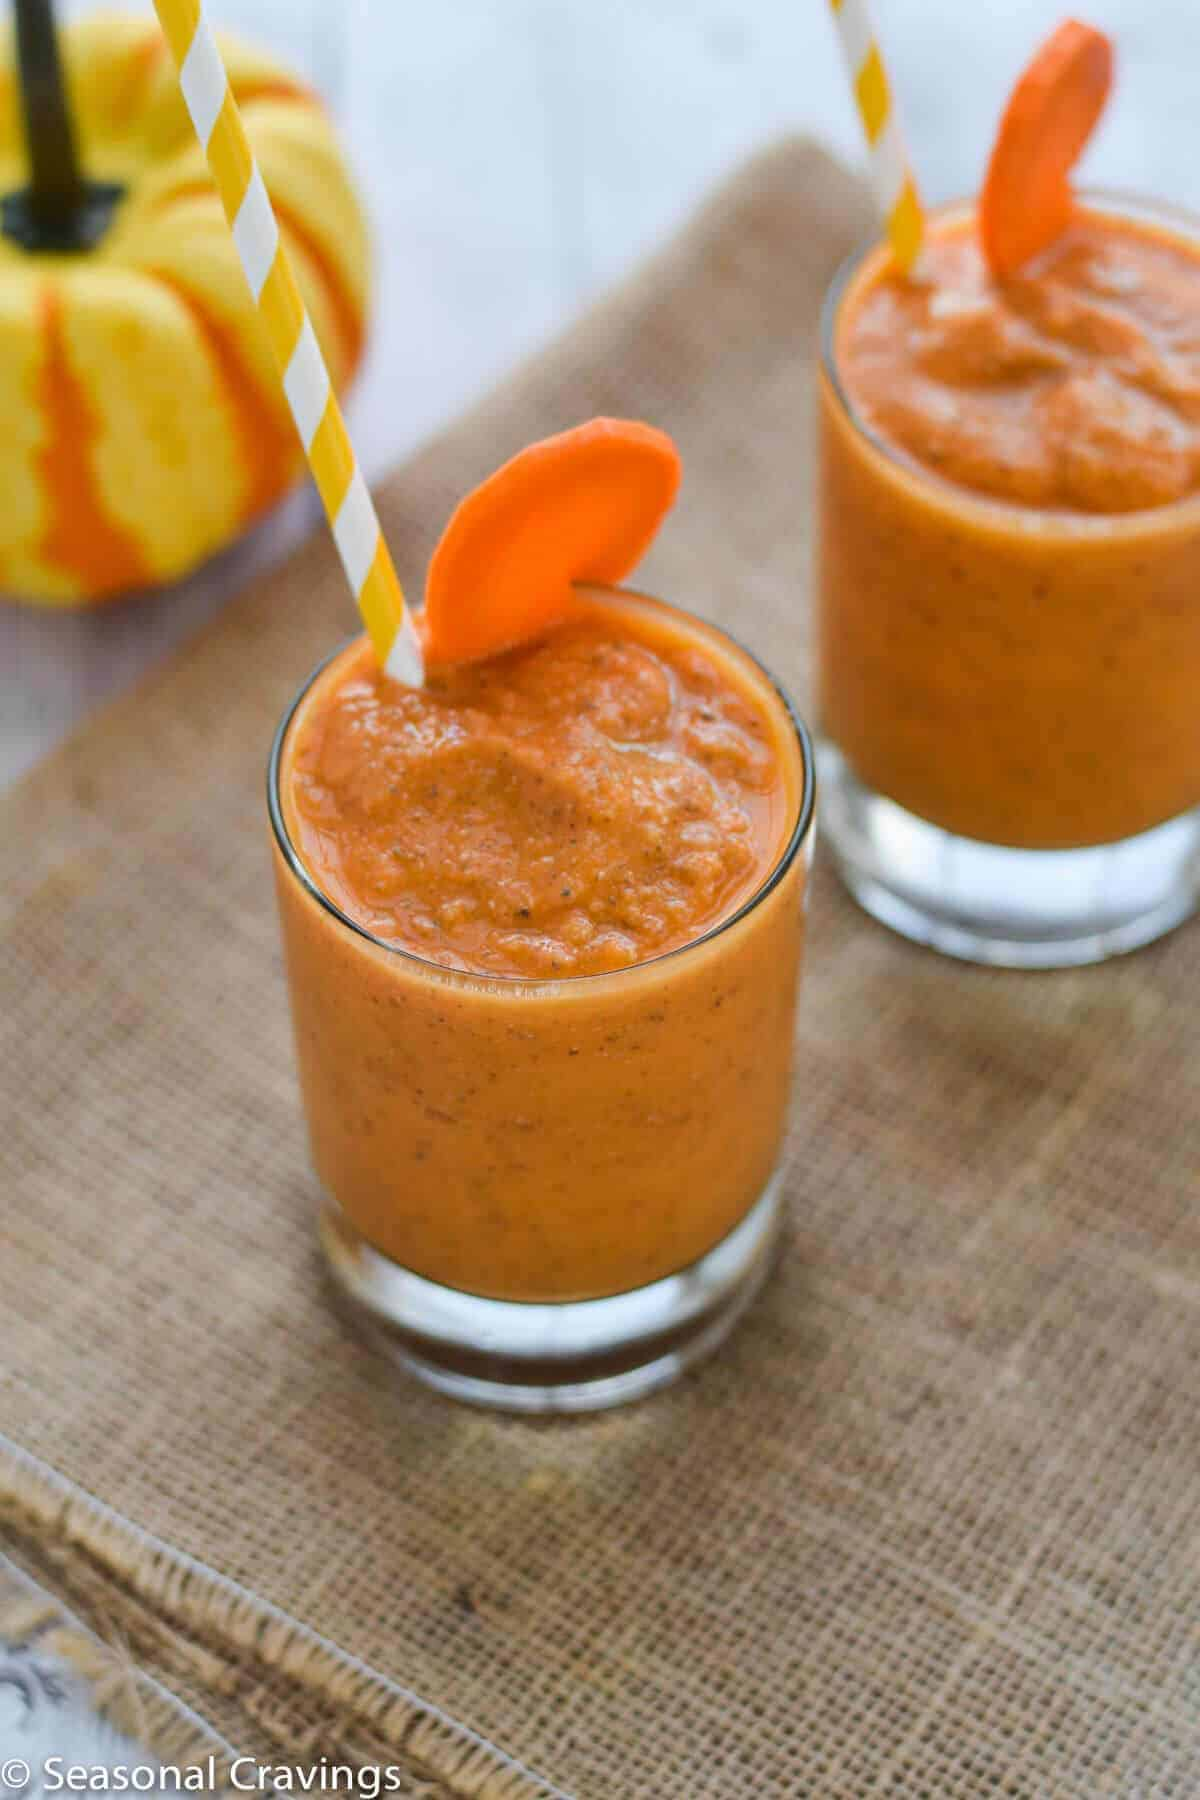 Mango Carrot Chia Smoothie fresh, healthy and delicious breakfast with straw and carrot garnish